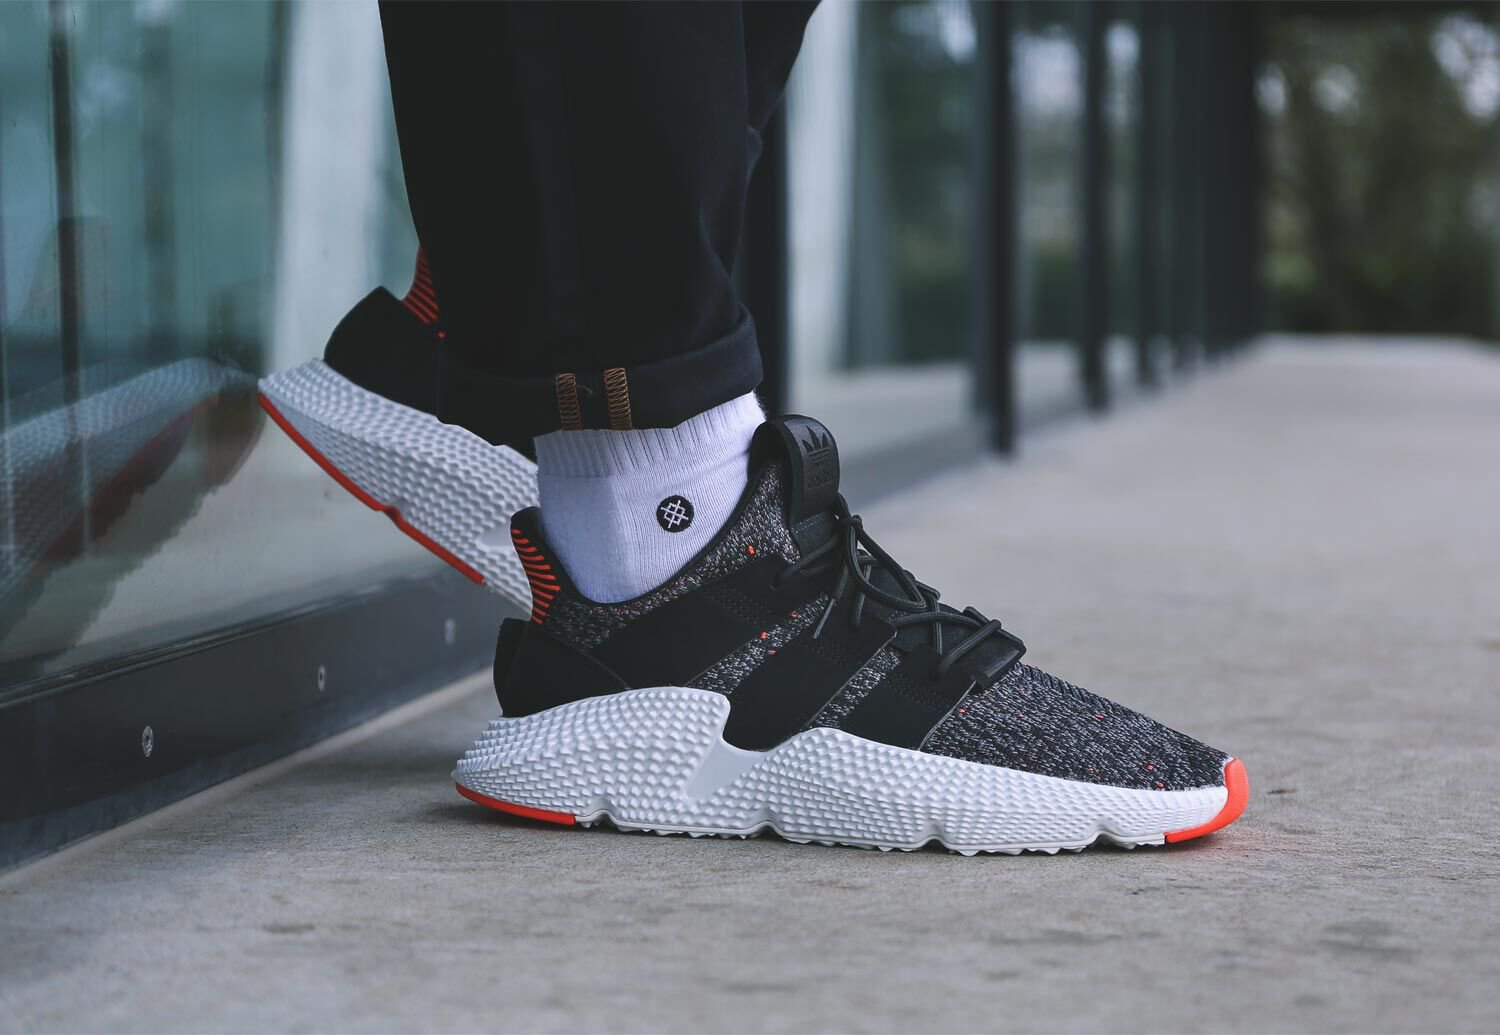 sells online retailer another chance Adidas Prophere core black/core black/solar red